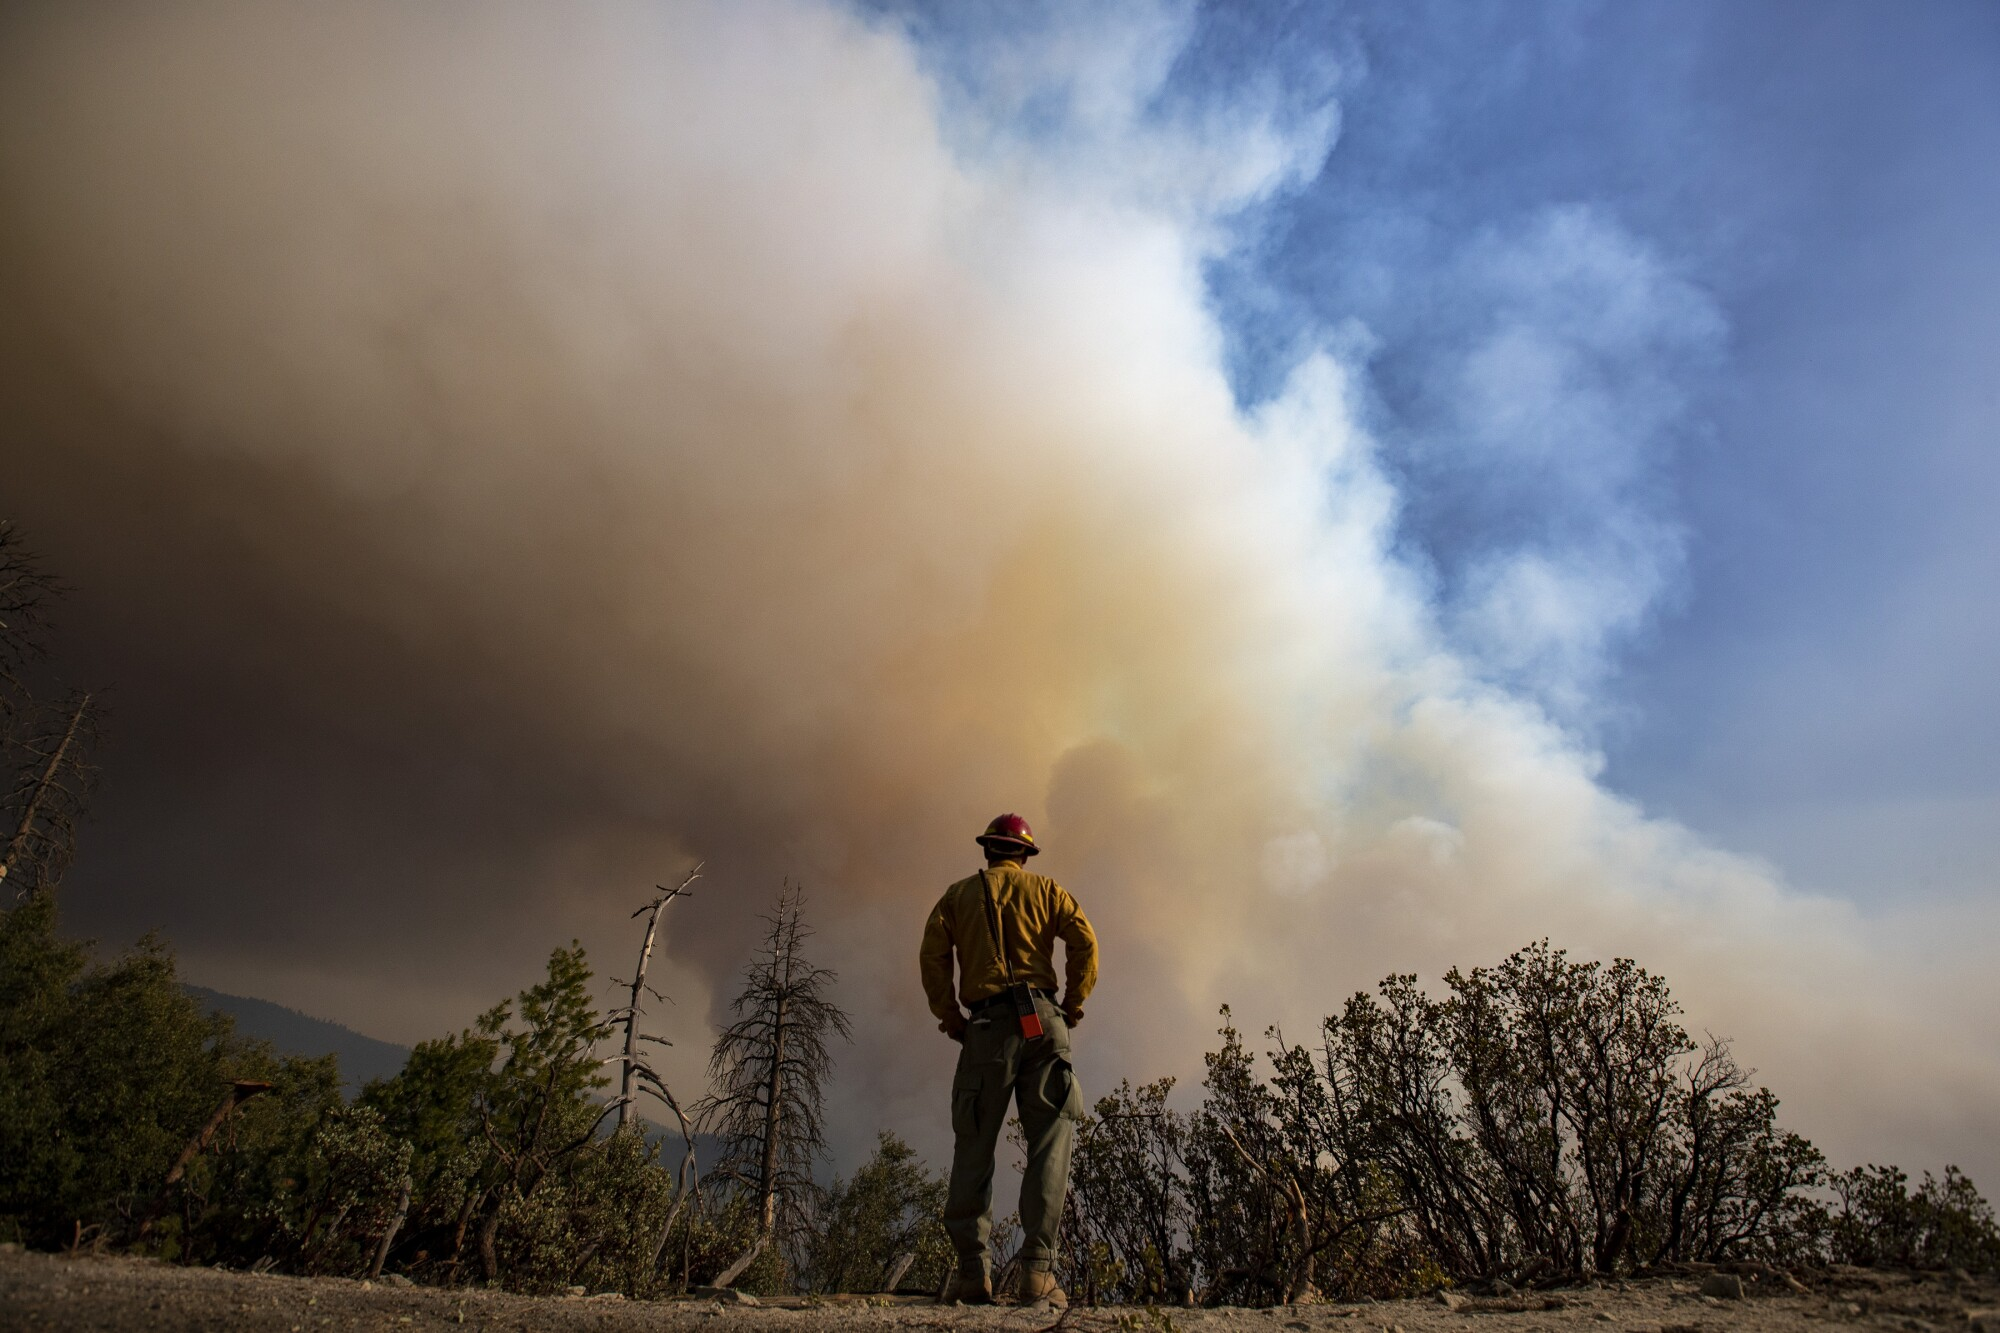 A firefighter faces a plume of smoke rising in a forested area